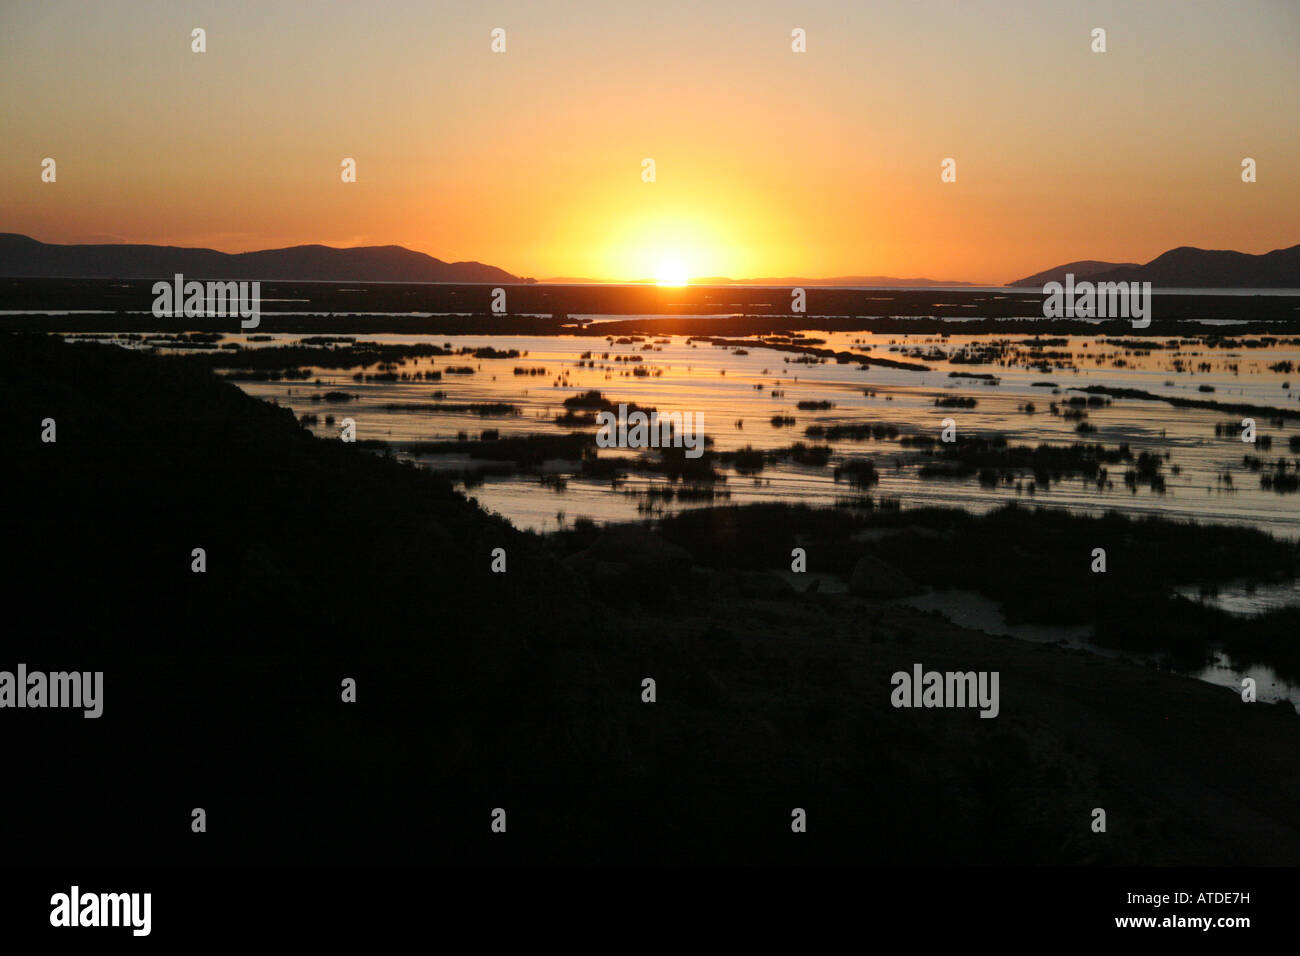 Sunrise over the reed islands of the Uros on Lake Titicaca Peru - Stock Image